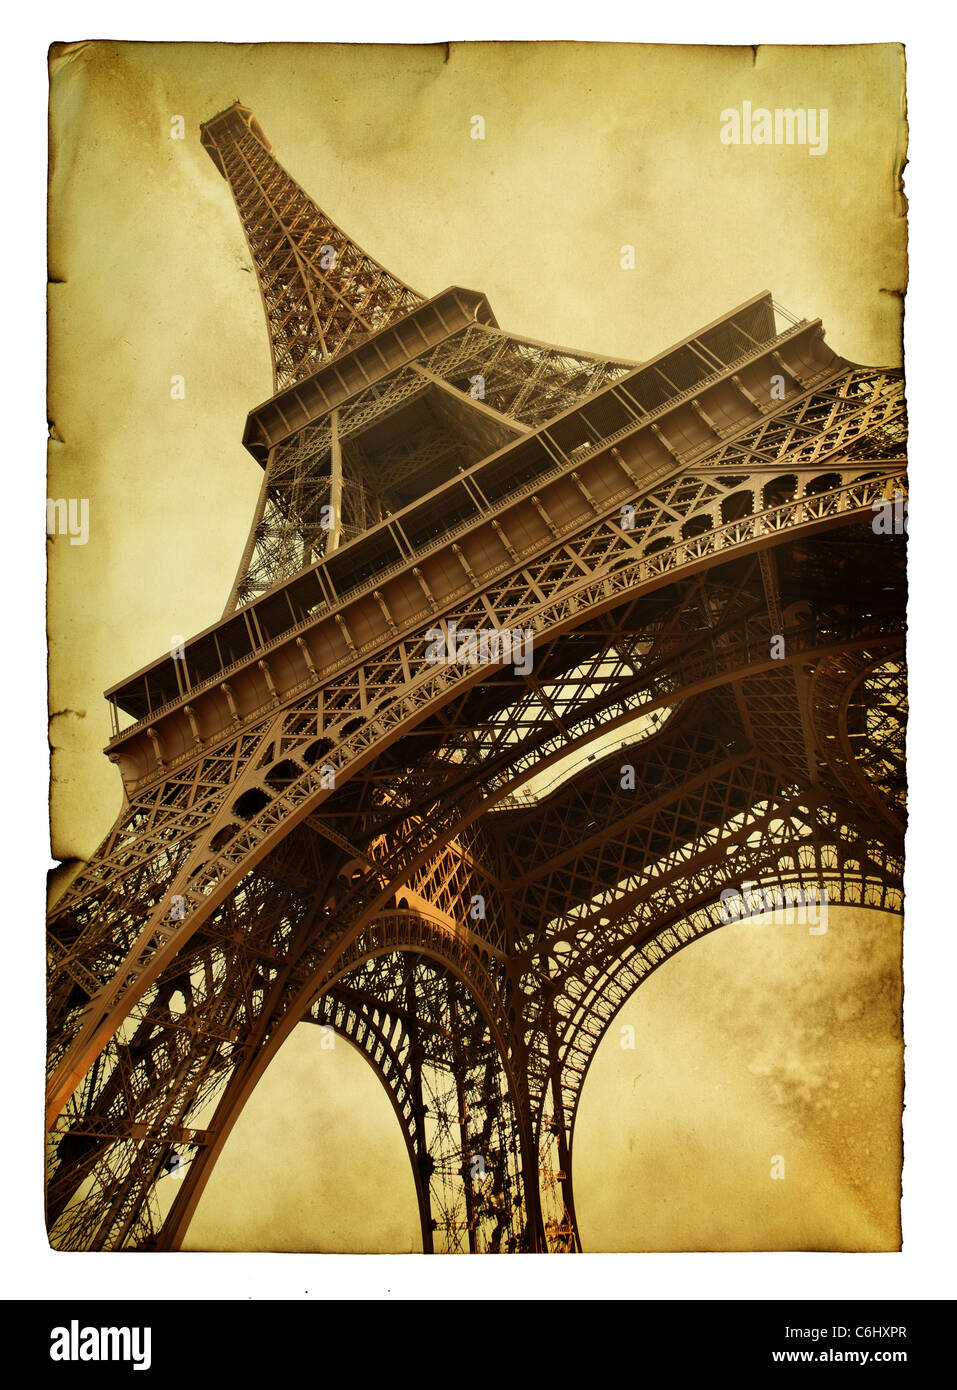 Vntage postcard with Eiffel tower isolated over white background Stock Photo